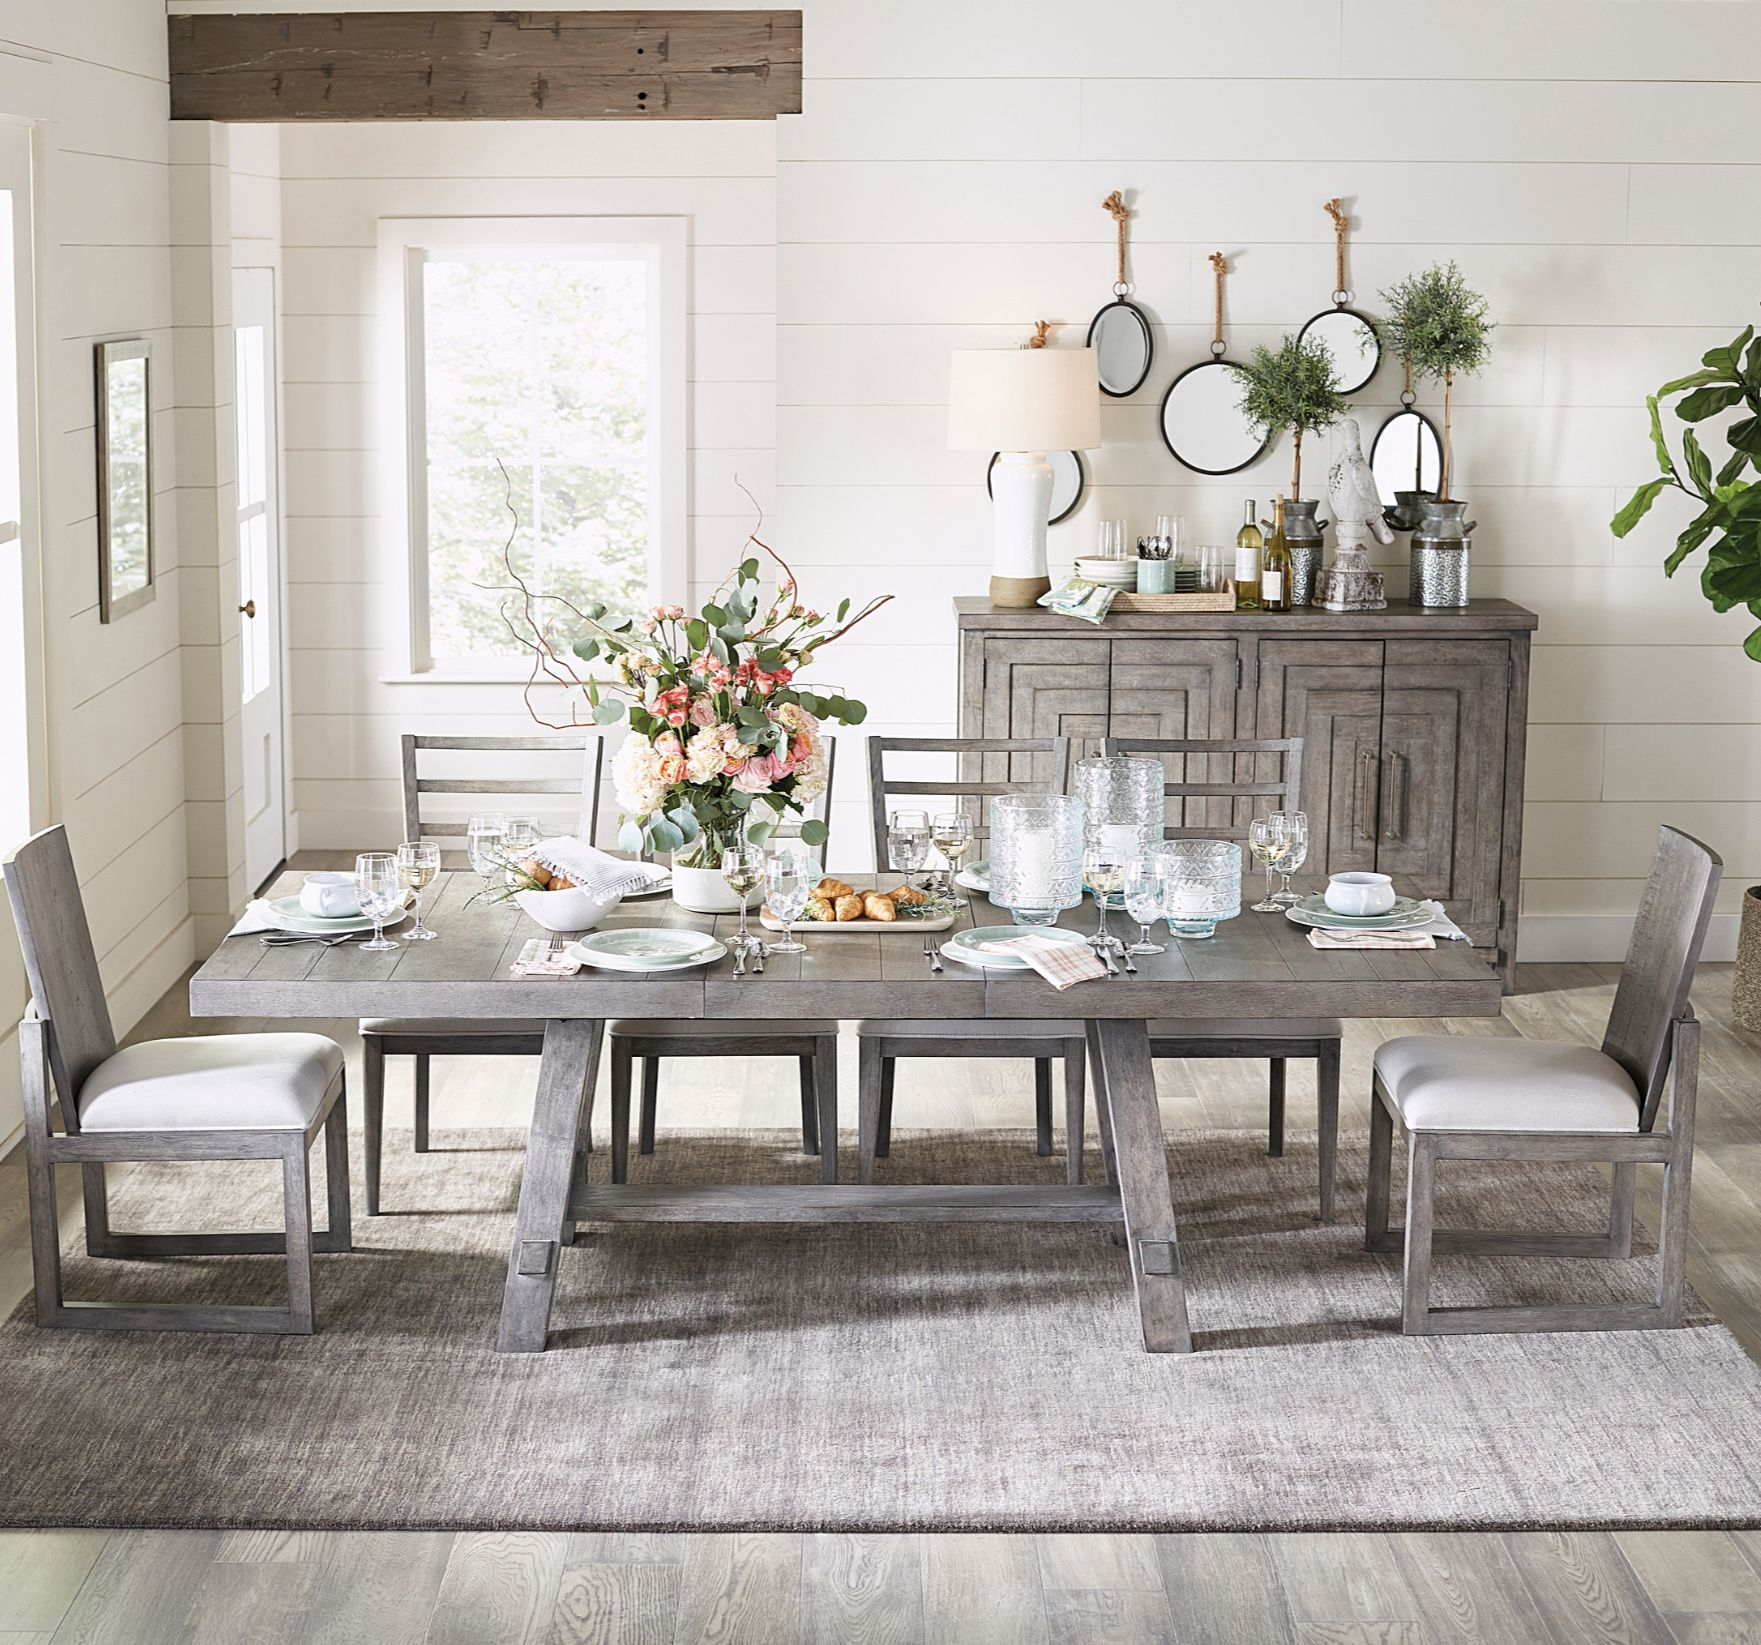 32 Stylish Dining Room Ideas To Impress Your Dinner Guests: Pin On Farmhouse Style